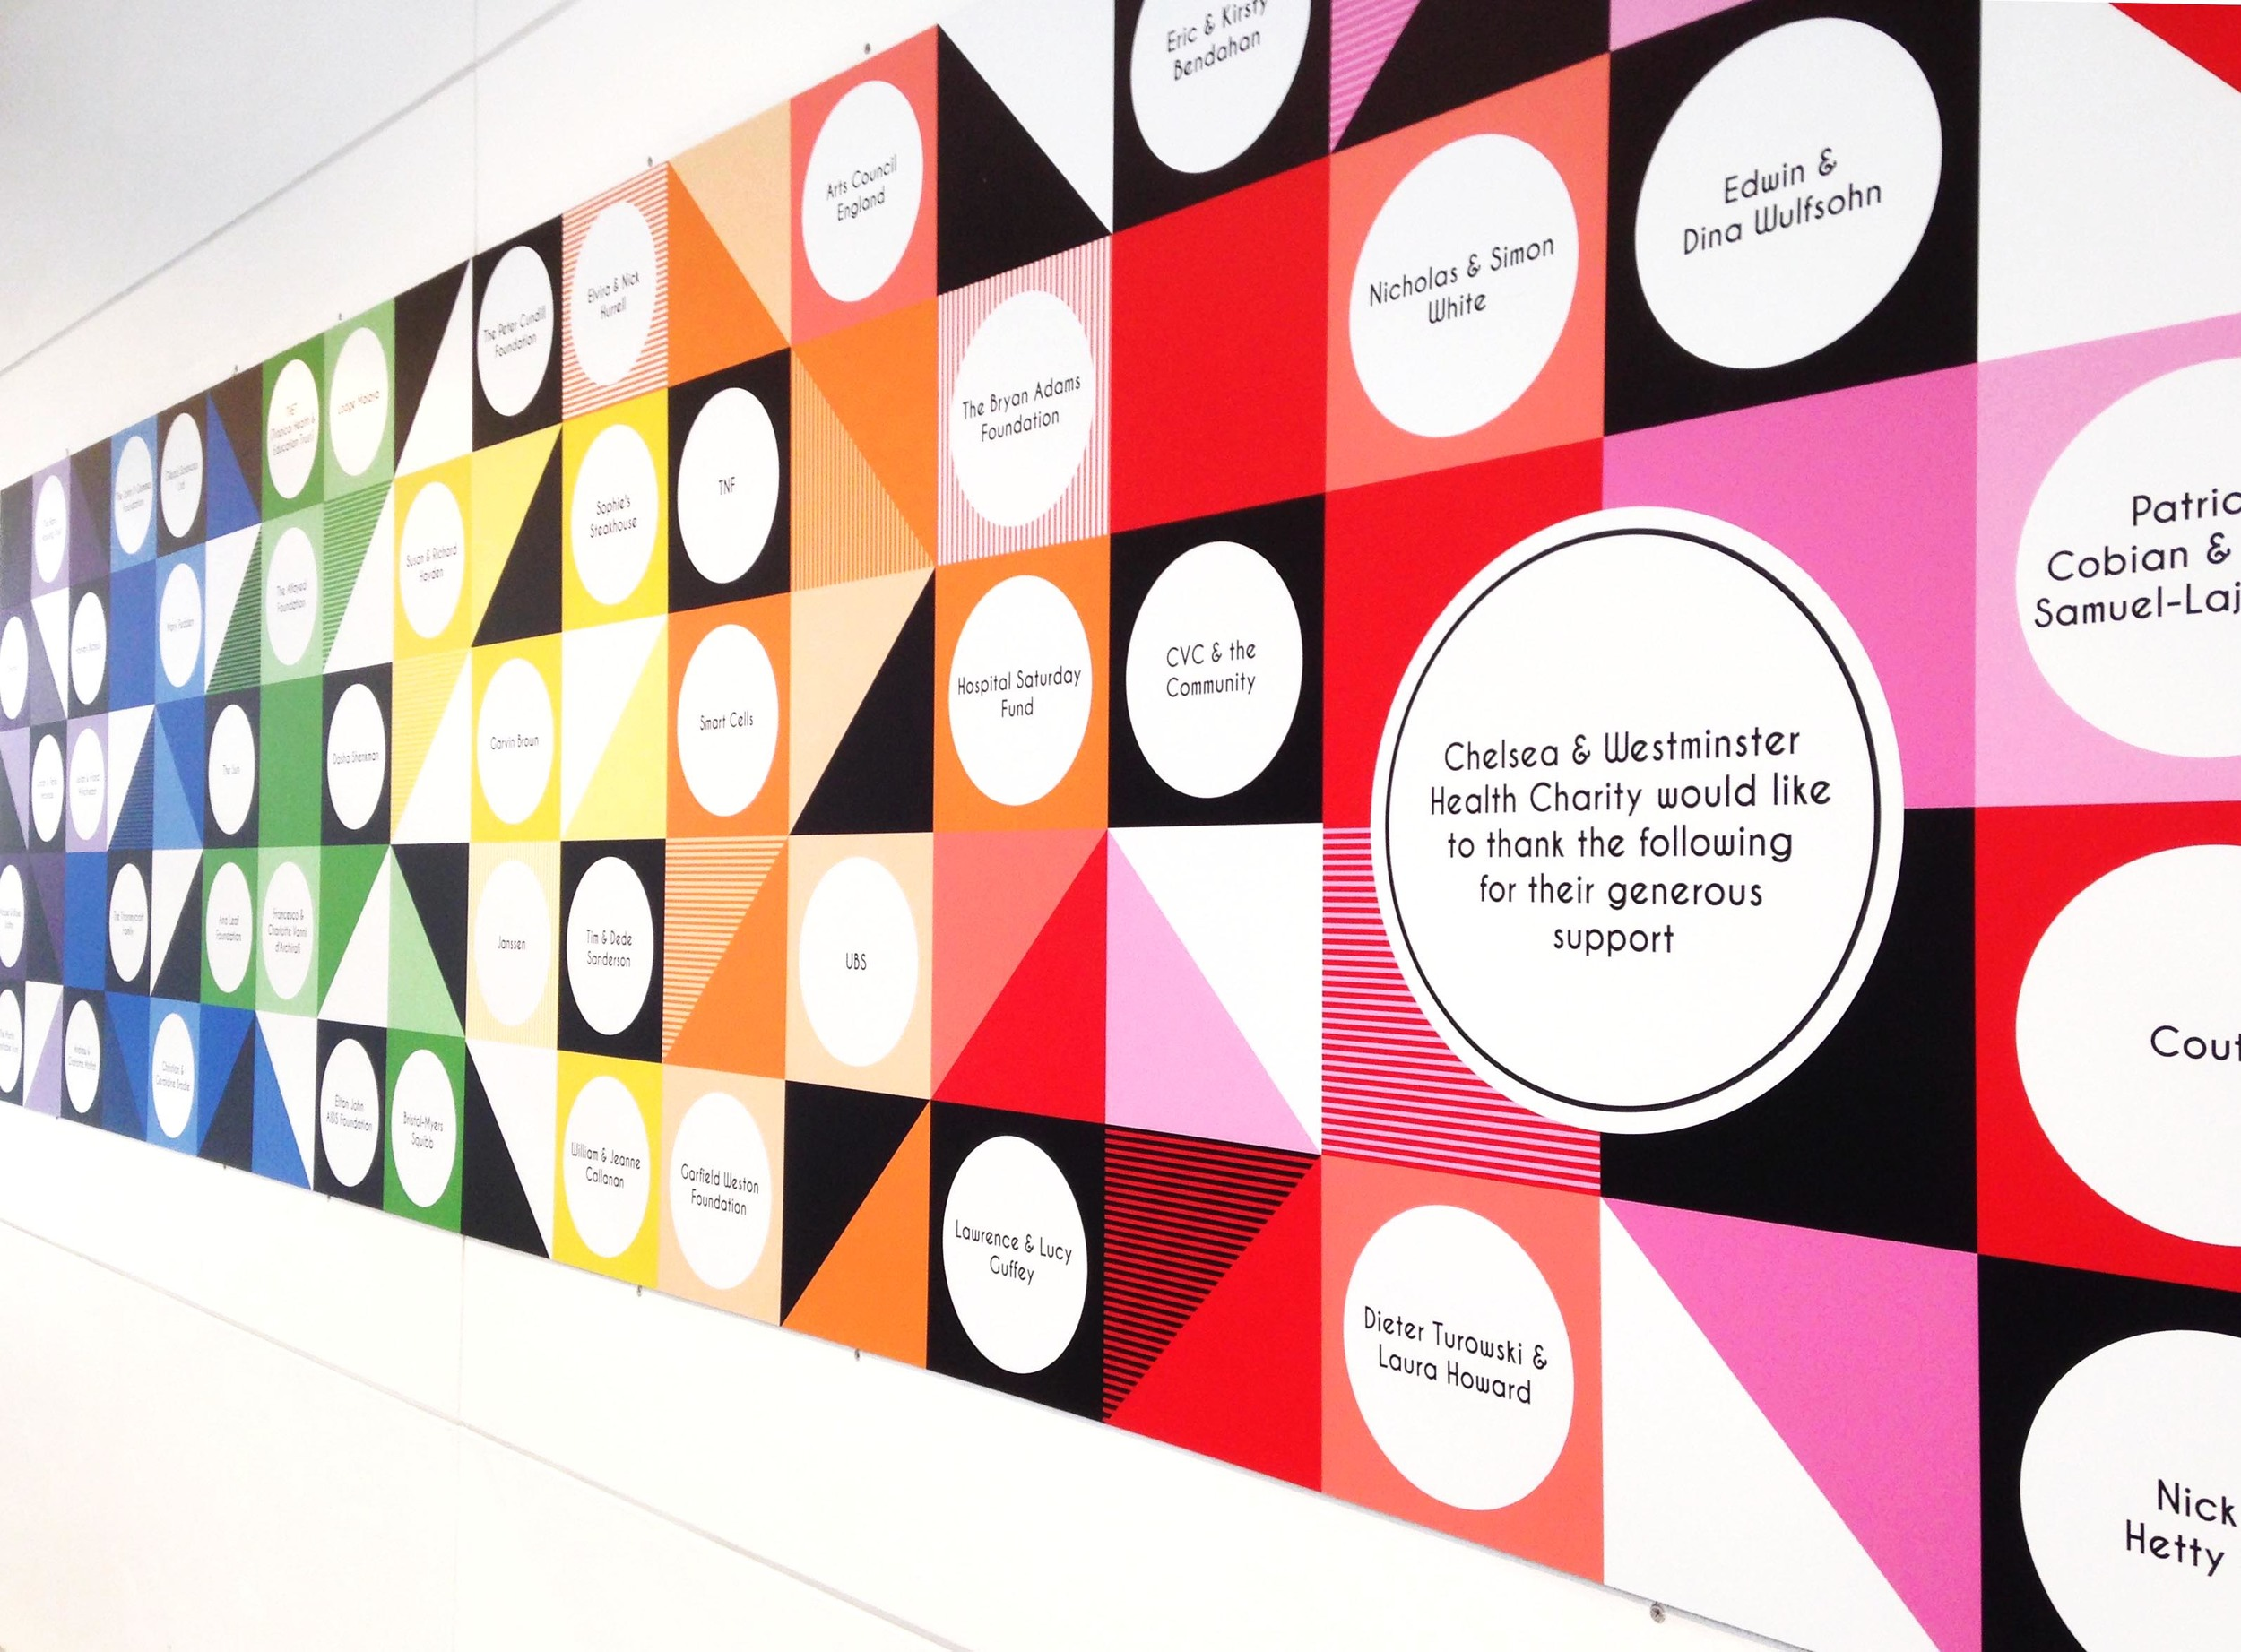 know+tell-illustration-chelseaandwestminsterhospital-donor-wall-1.jpg